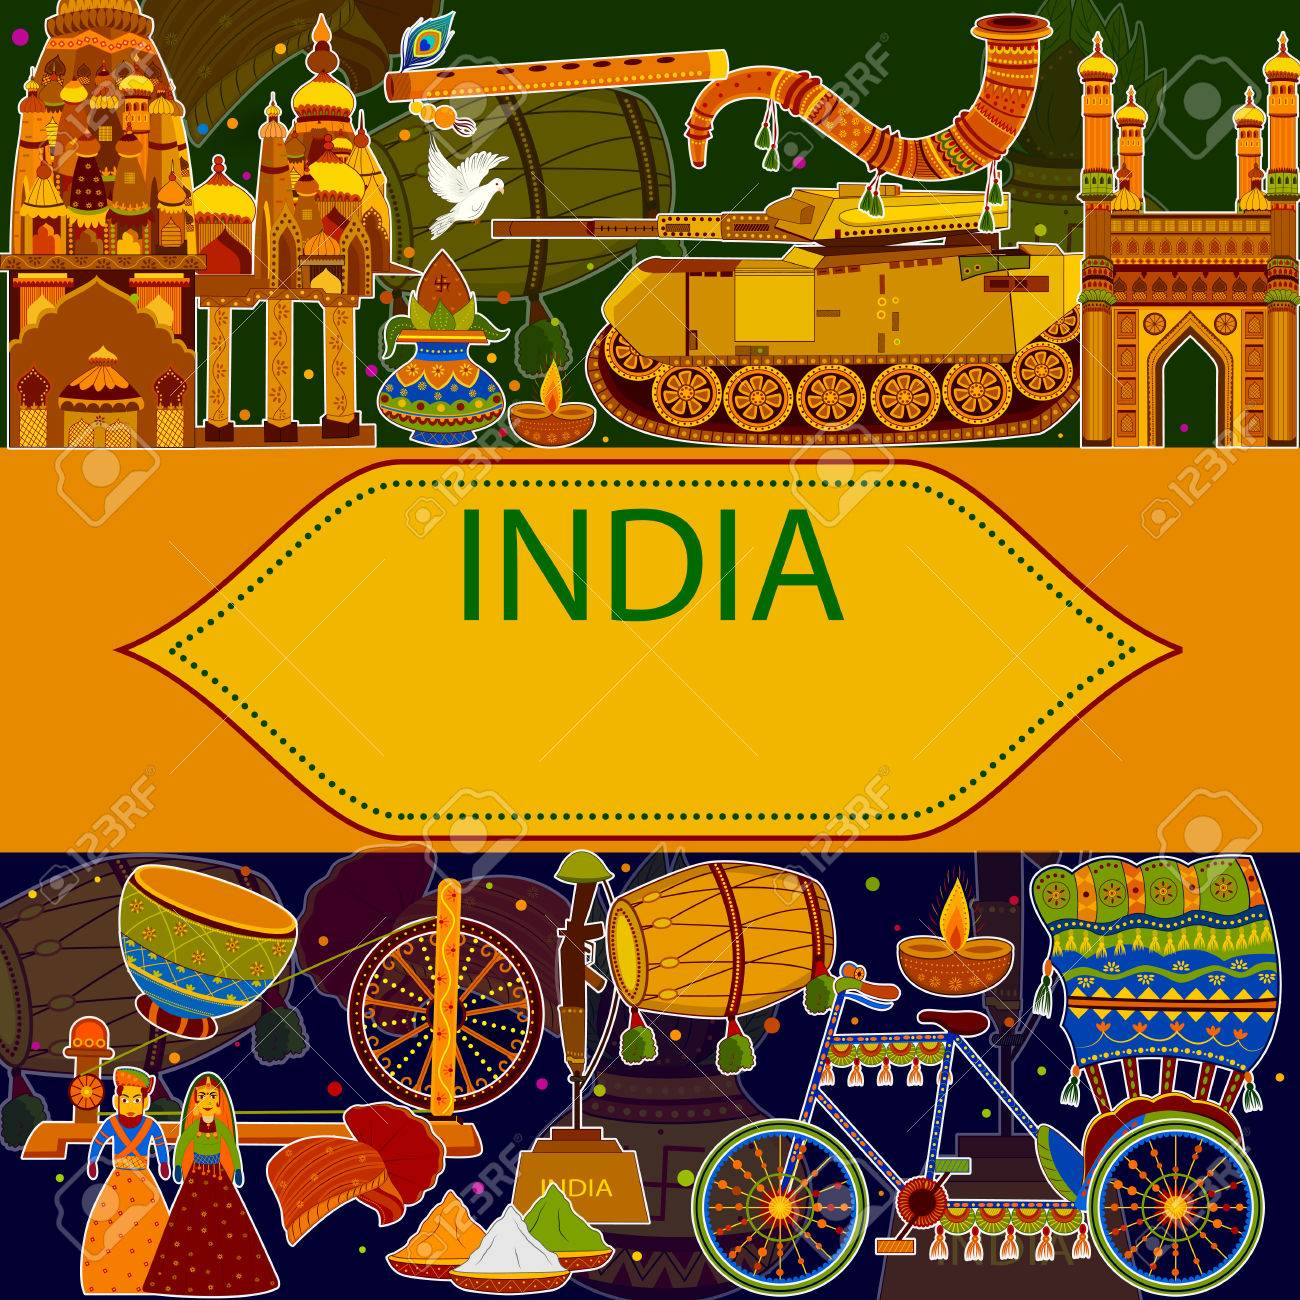 Incredible India background depicting Indian colorful culture